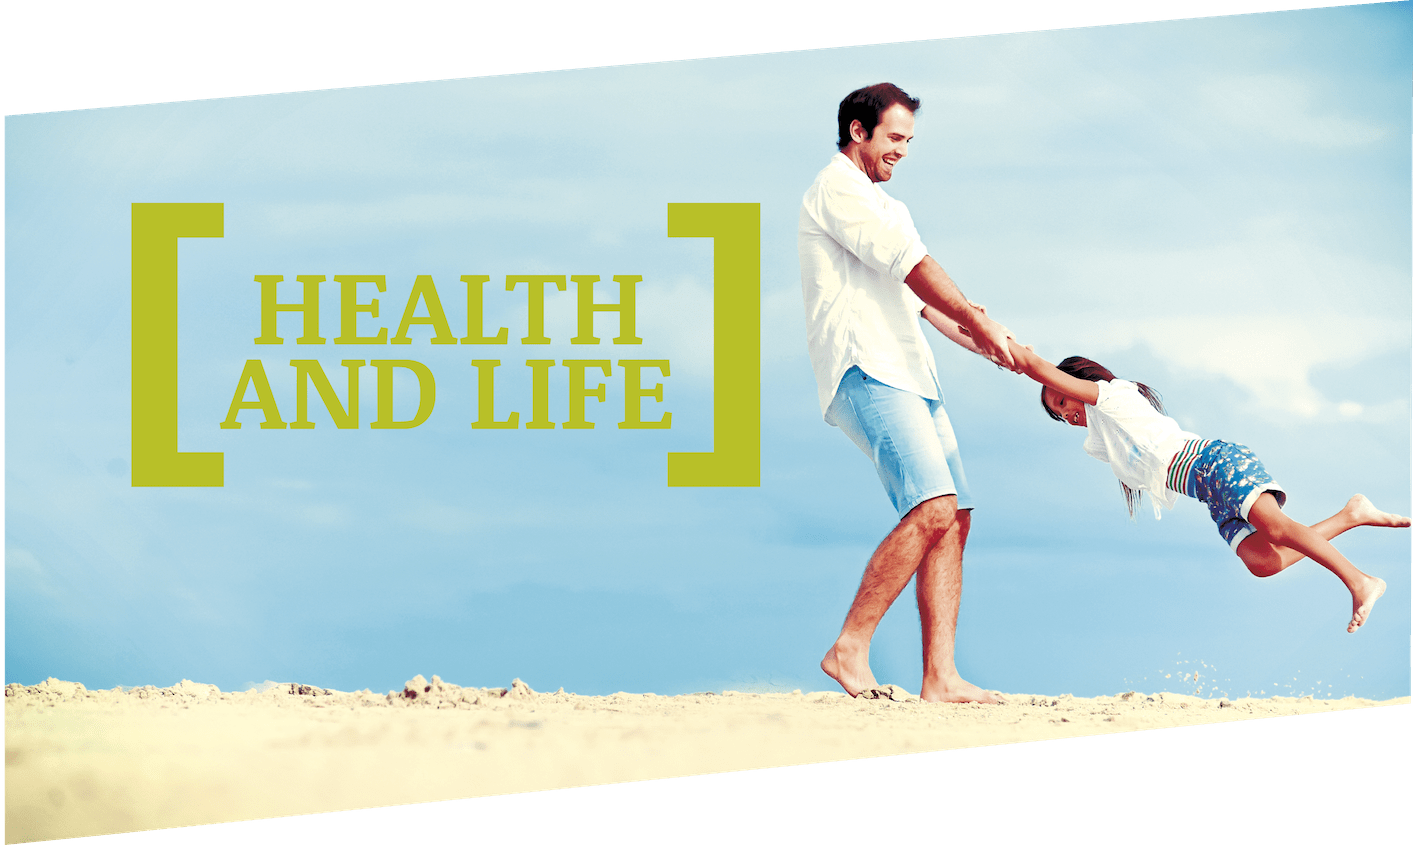 Insurance Health and care